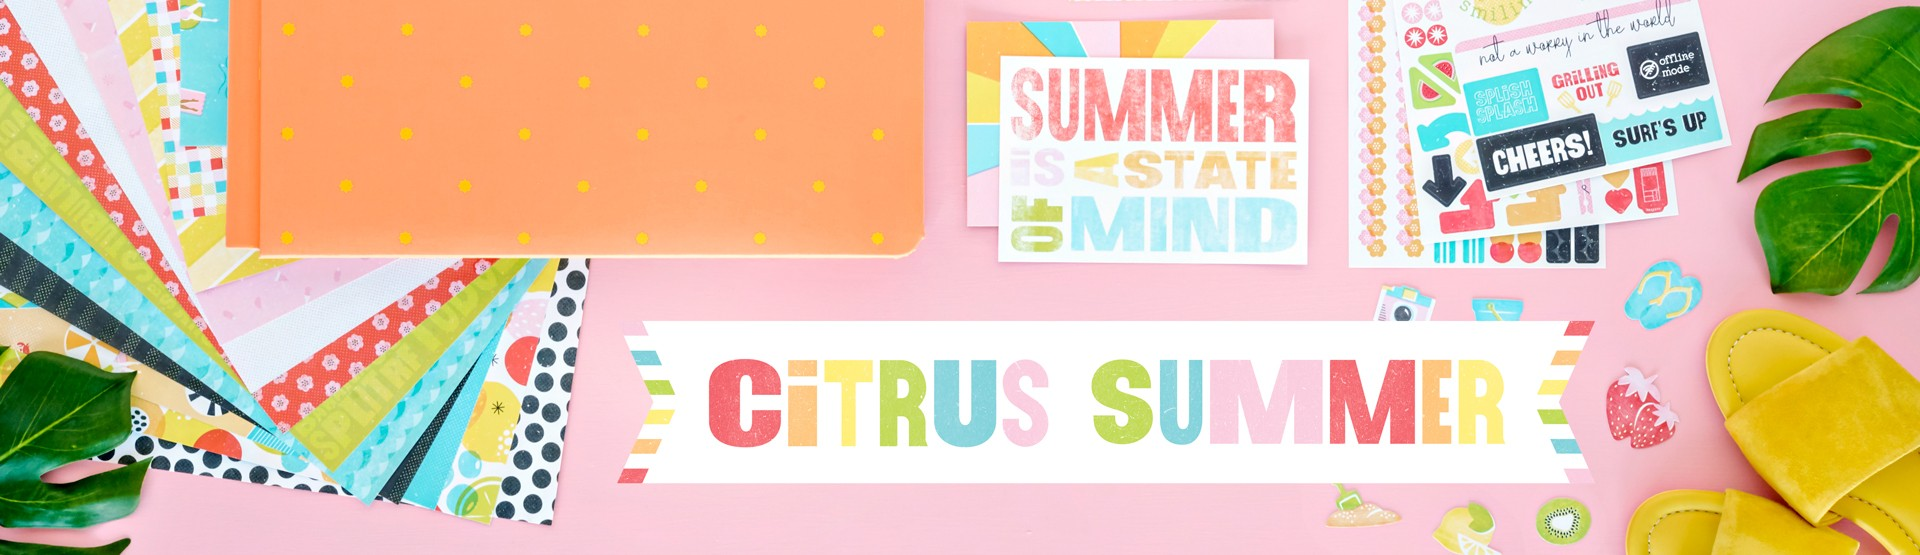 Summer & Beach: Citrus Summer